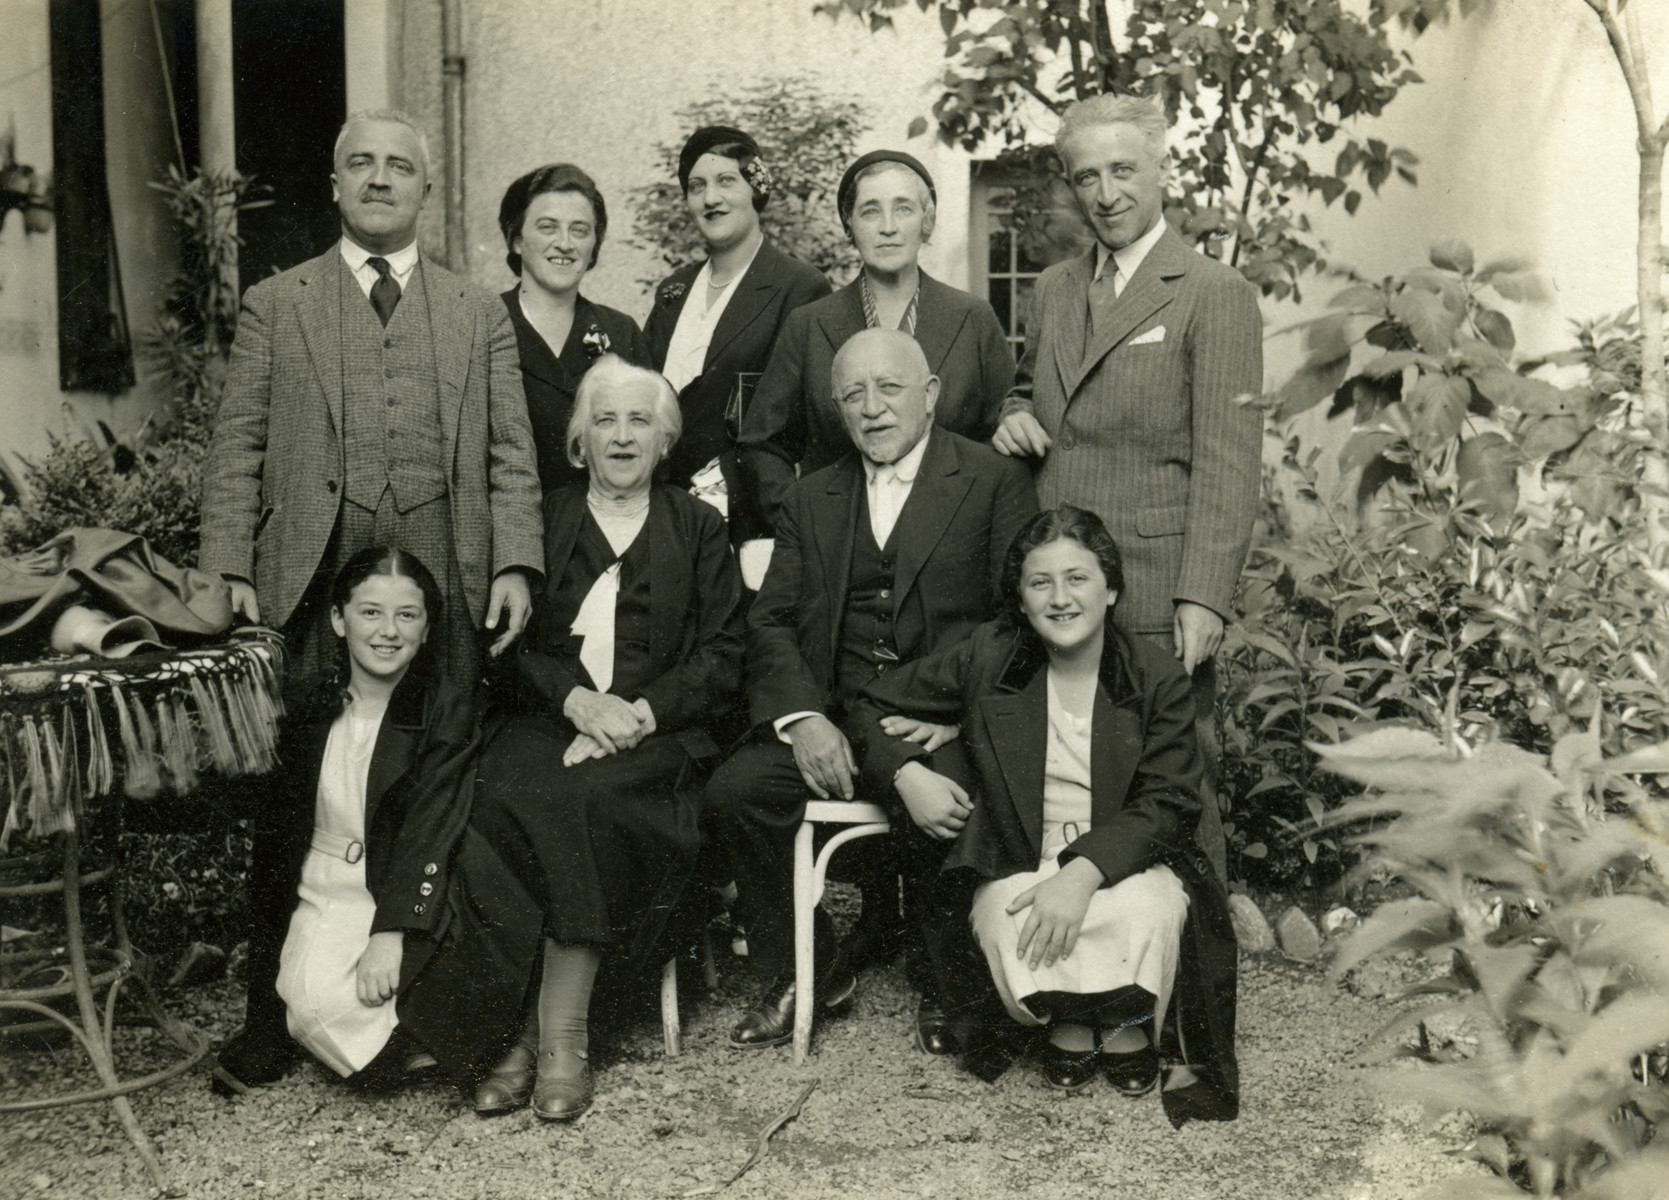 Family portrait of the Duschnitz family in a garden in Piestany.   Pictured standing are Robert Duschnitz (brother Frida Sigmund), Rozsi Duschnitz Erdelyi (sister of Frida Sigmund), Stefi Dushnitz (wife of Erno), Anna Duschnitz Diamant, and Erno Duschnitz.  Seated are Heda Erdelyi, Cecilia and Benedikt Baruch Duschnitz, Magda Erdelyi.